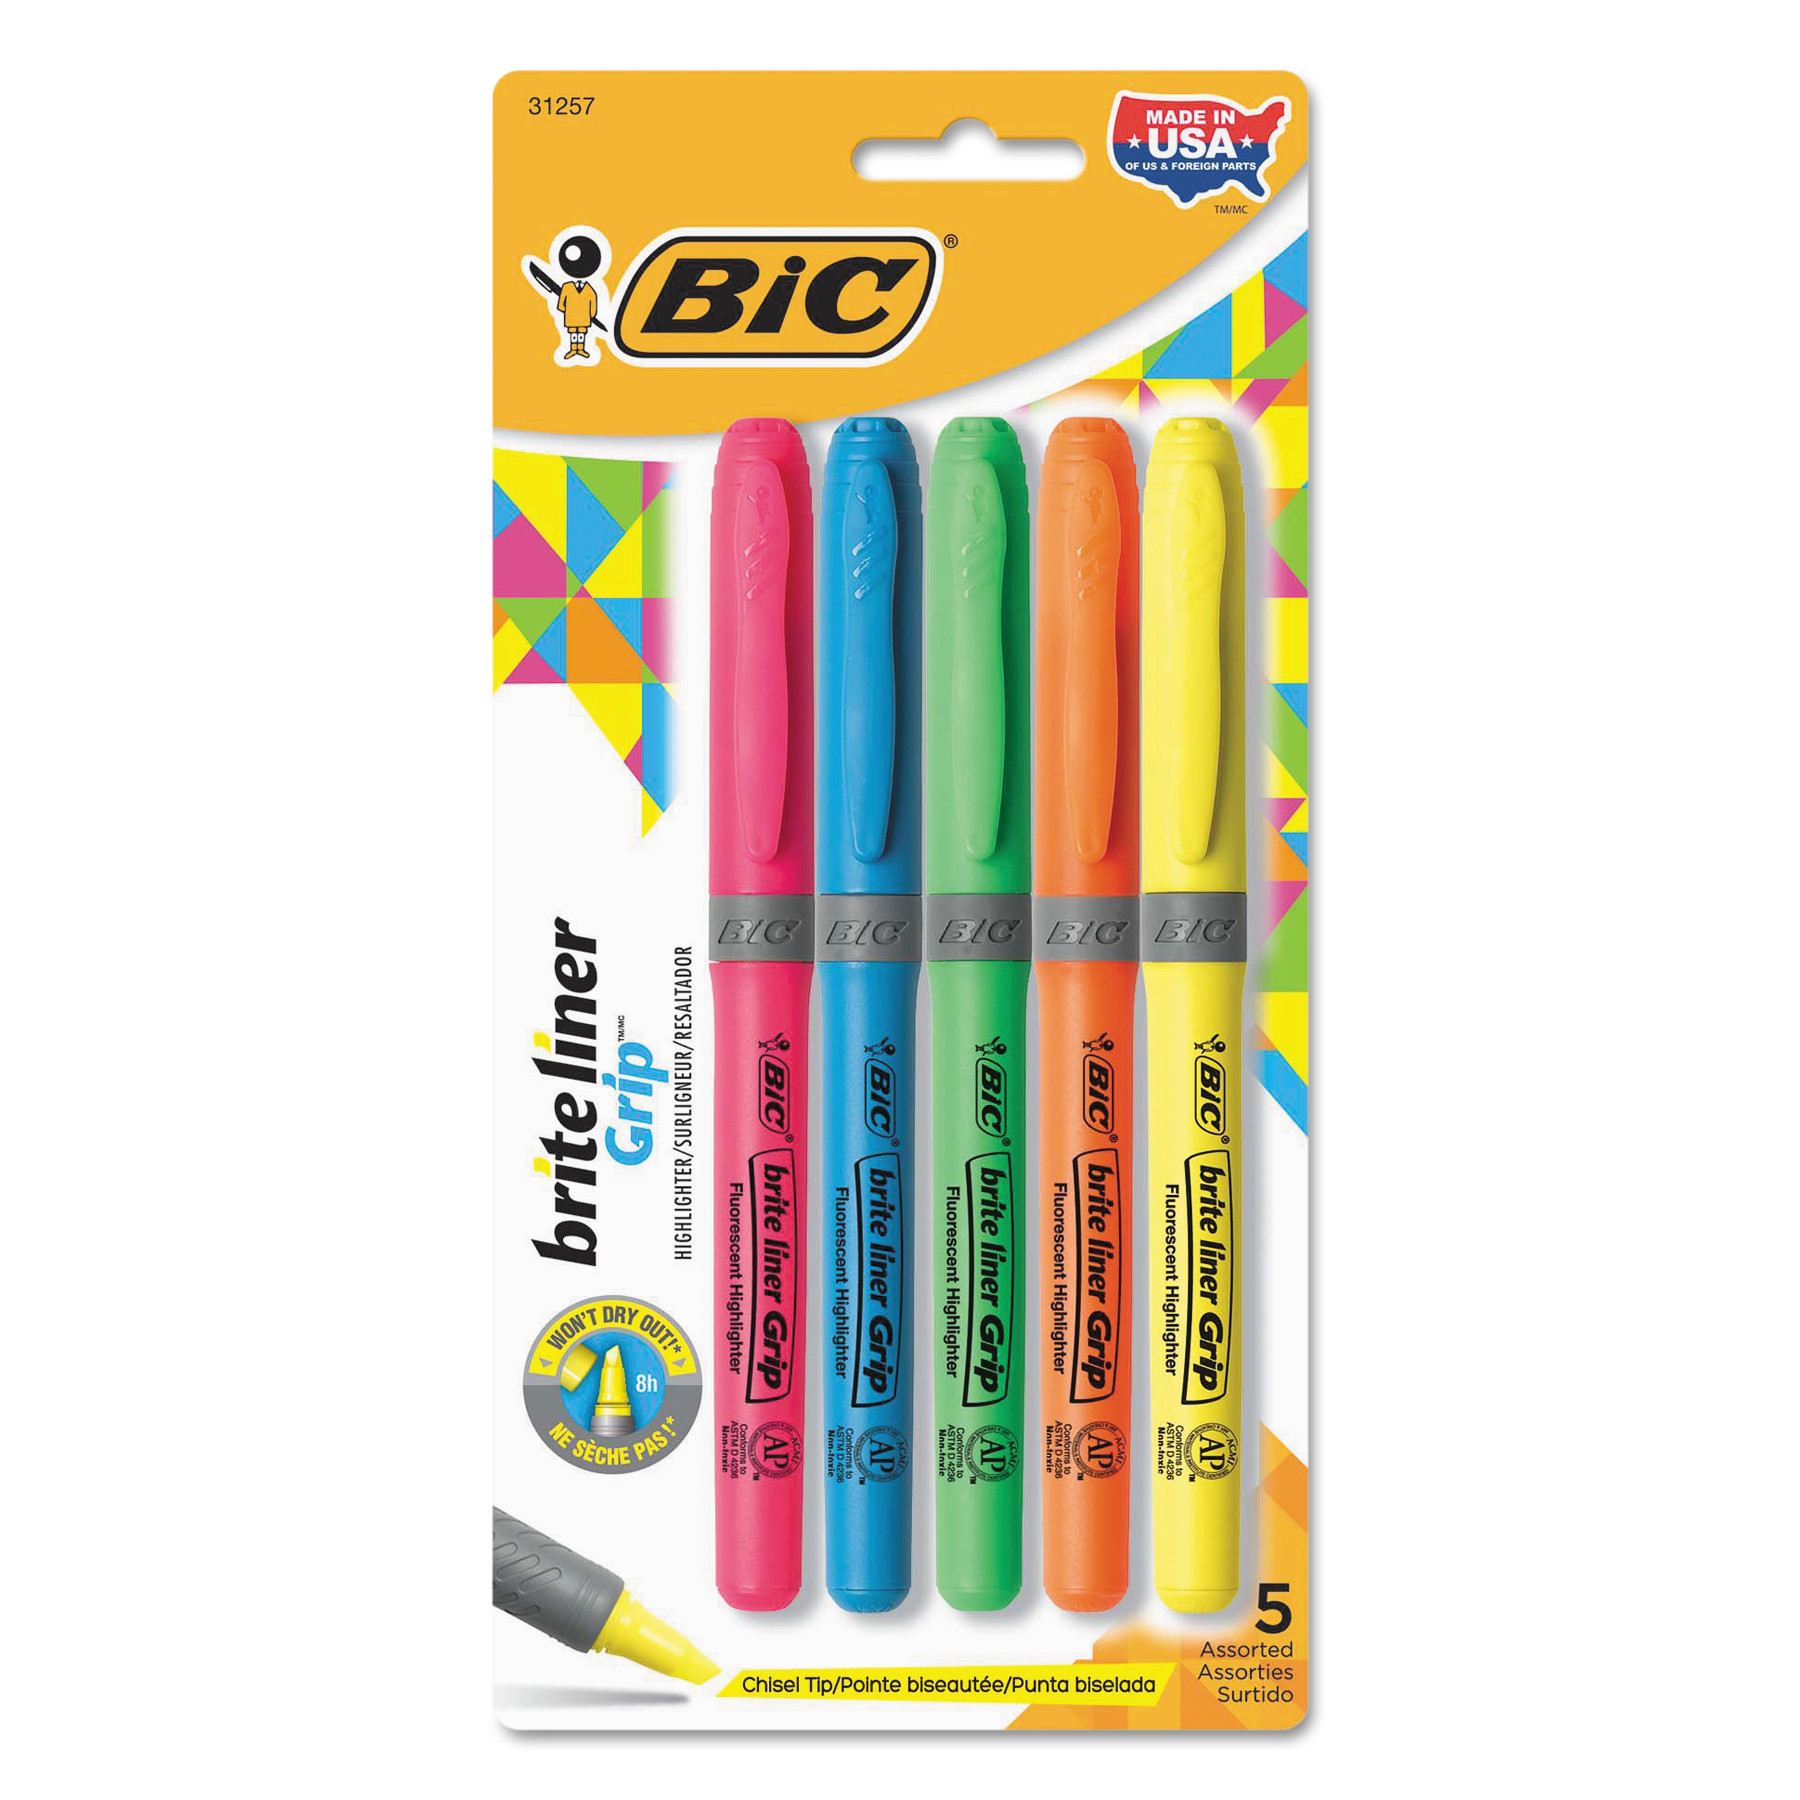 BIC Brite Liner Grip Pocket Highlighter, Chisel Tip, Assorted Colors, 5 Count